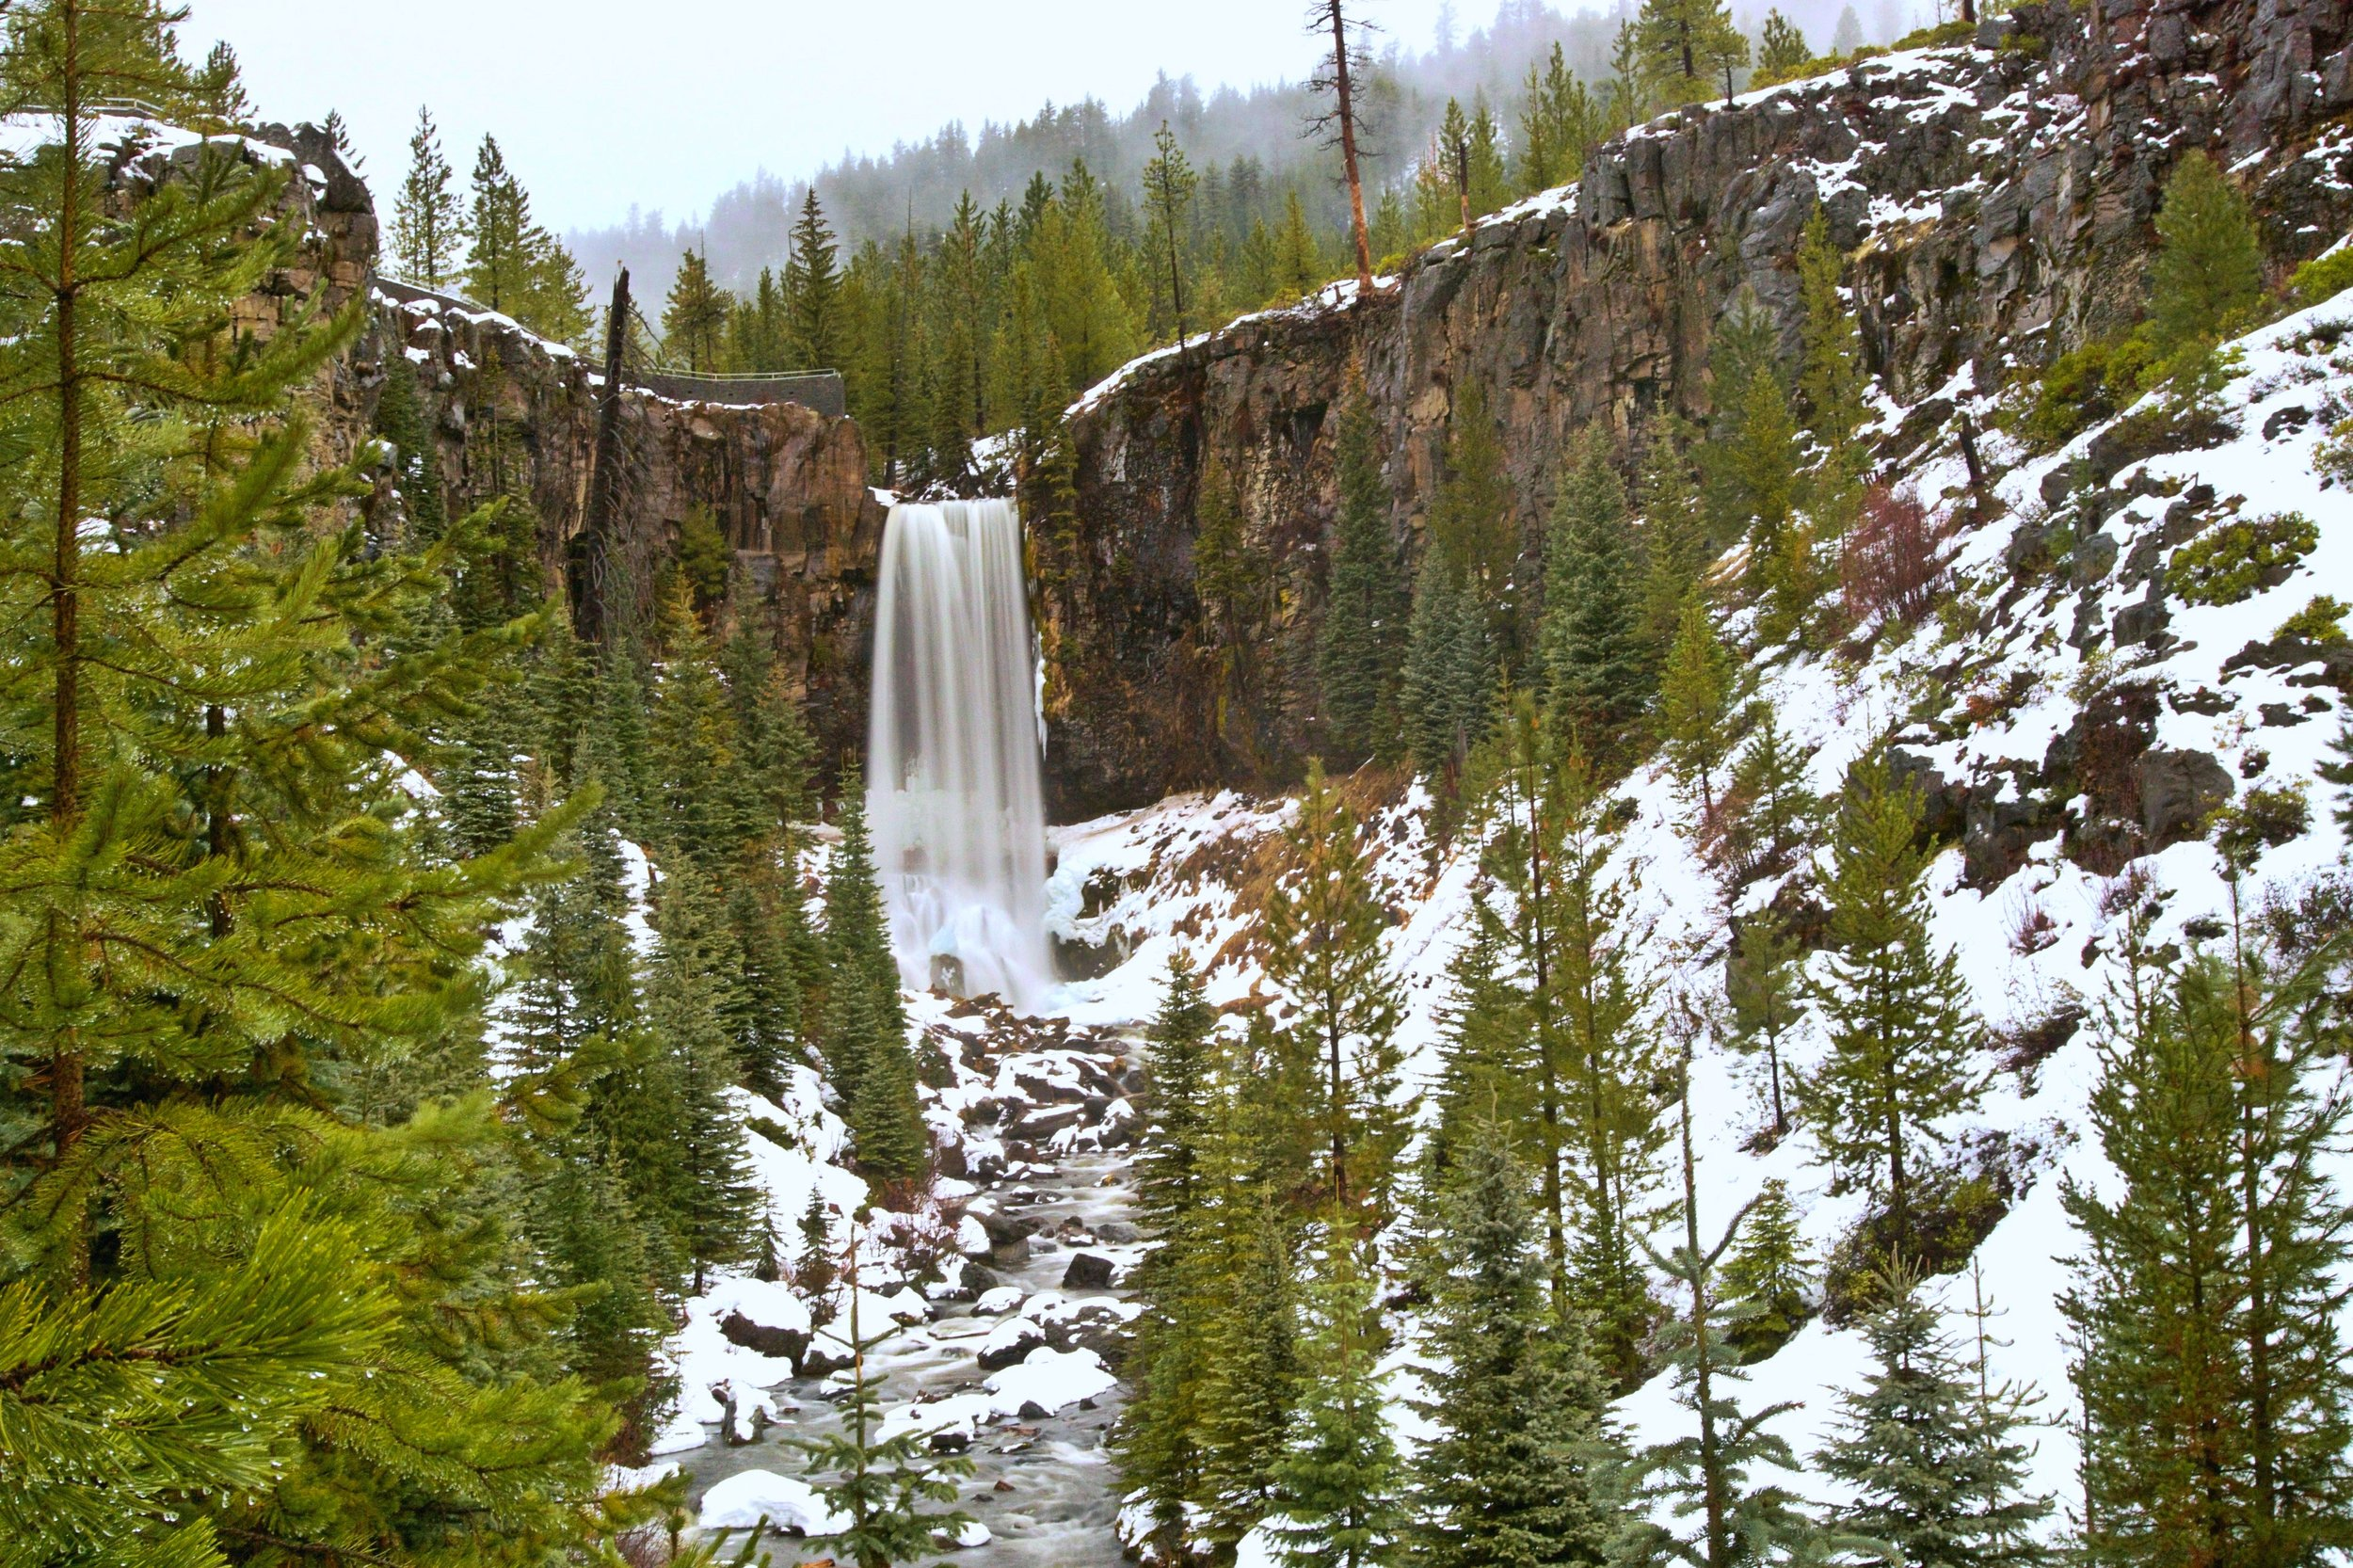 Snowshoe to Tumalo Falls, Bend Oregon